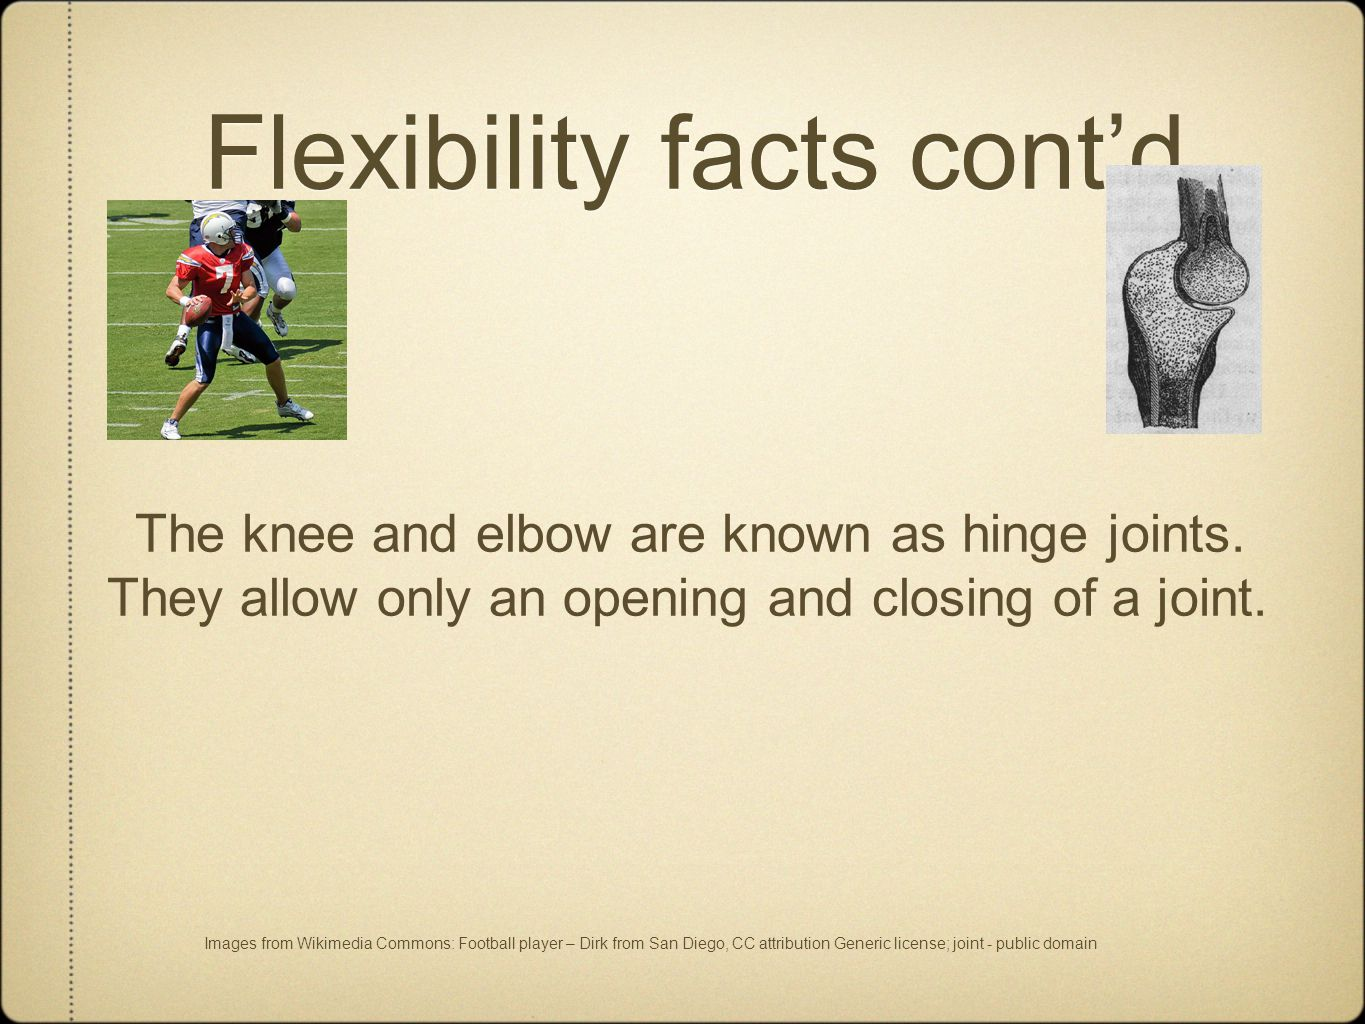 Flexibility facts cont'd. The knee and elbow are known as hinge joints.